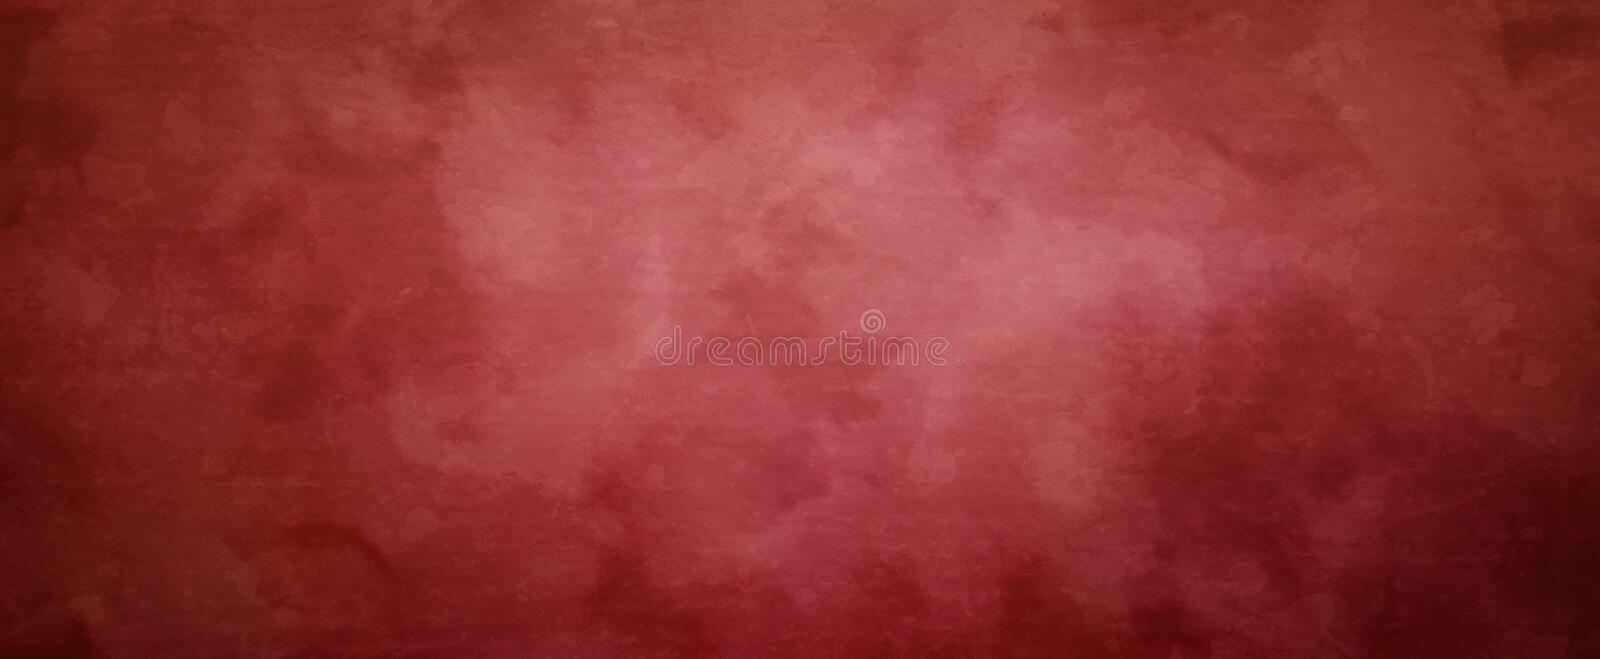 Old red Christmas background with vintage marbled grunge texture, solid blank elegant red banner layout. In panoramic size royalty free illustration